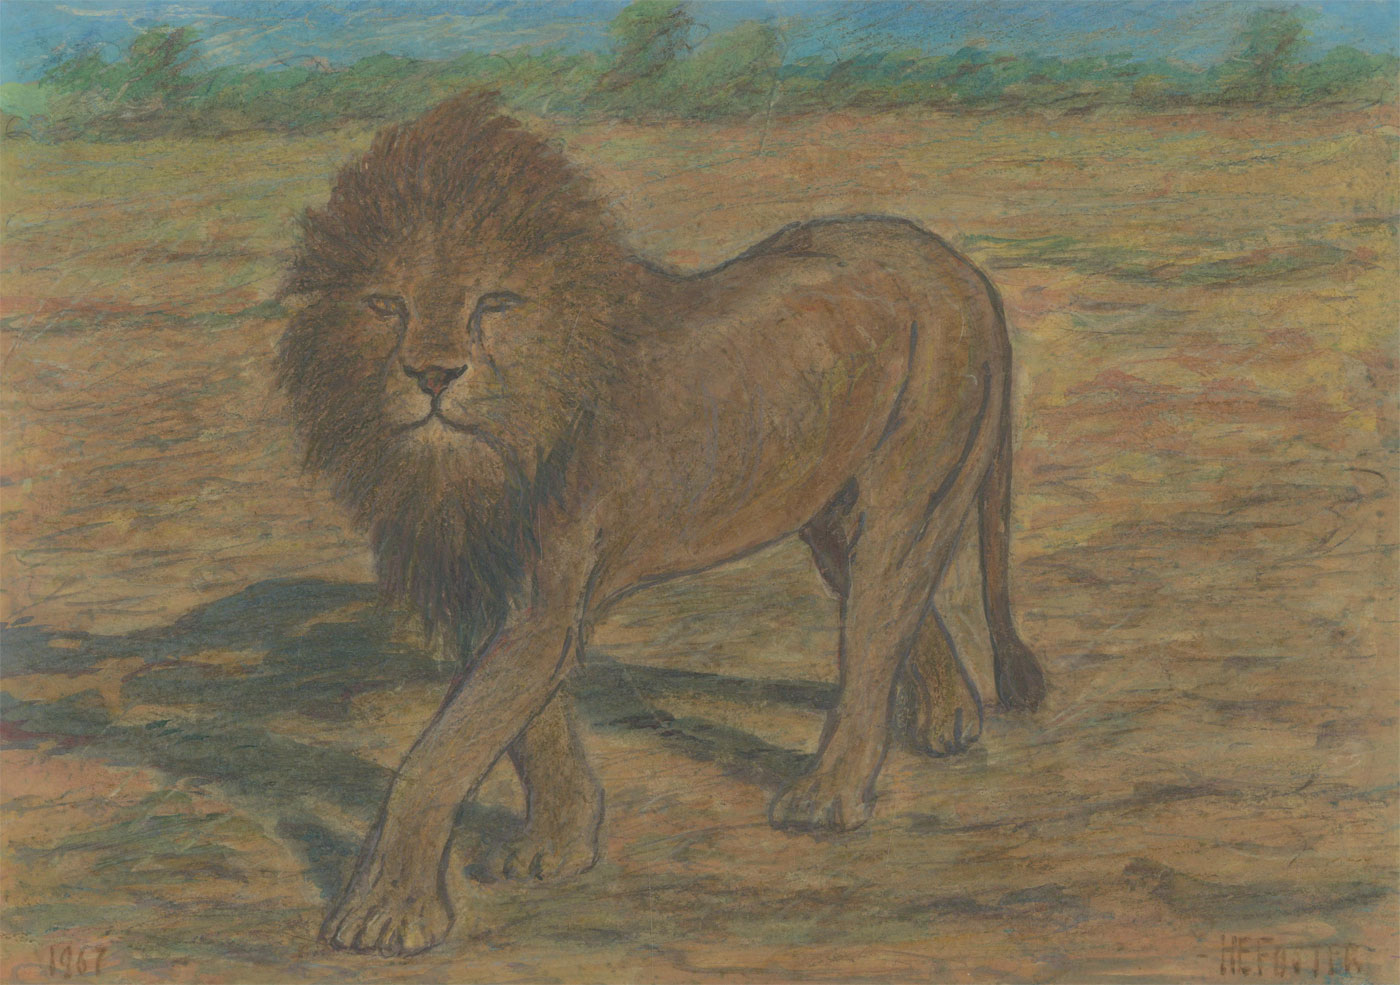 Henry E. Foster (1921-2010) - 1967 Watercolour, Study of a Lion